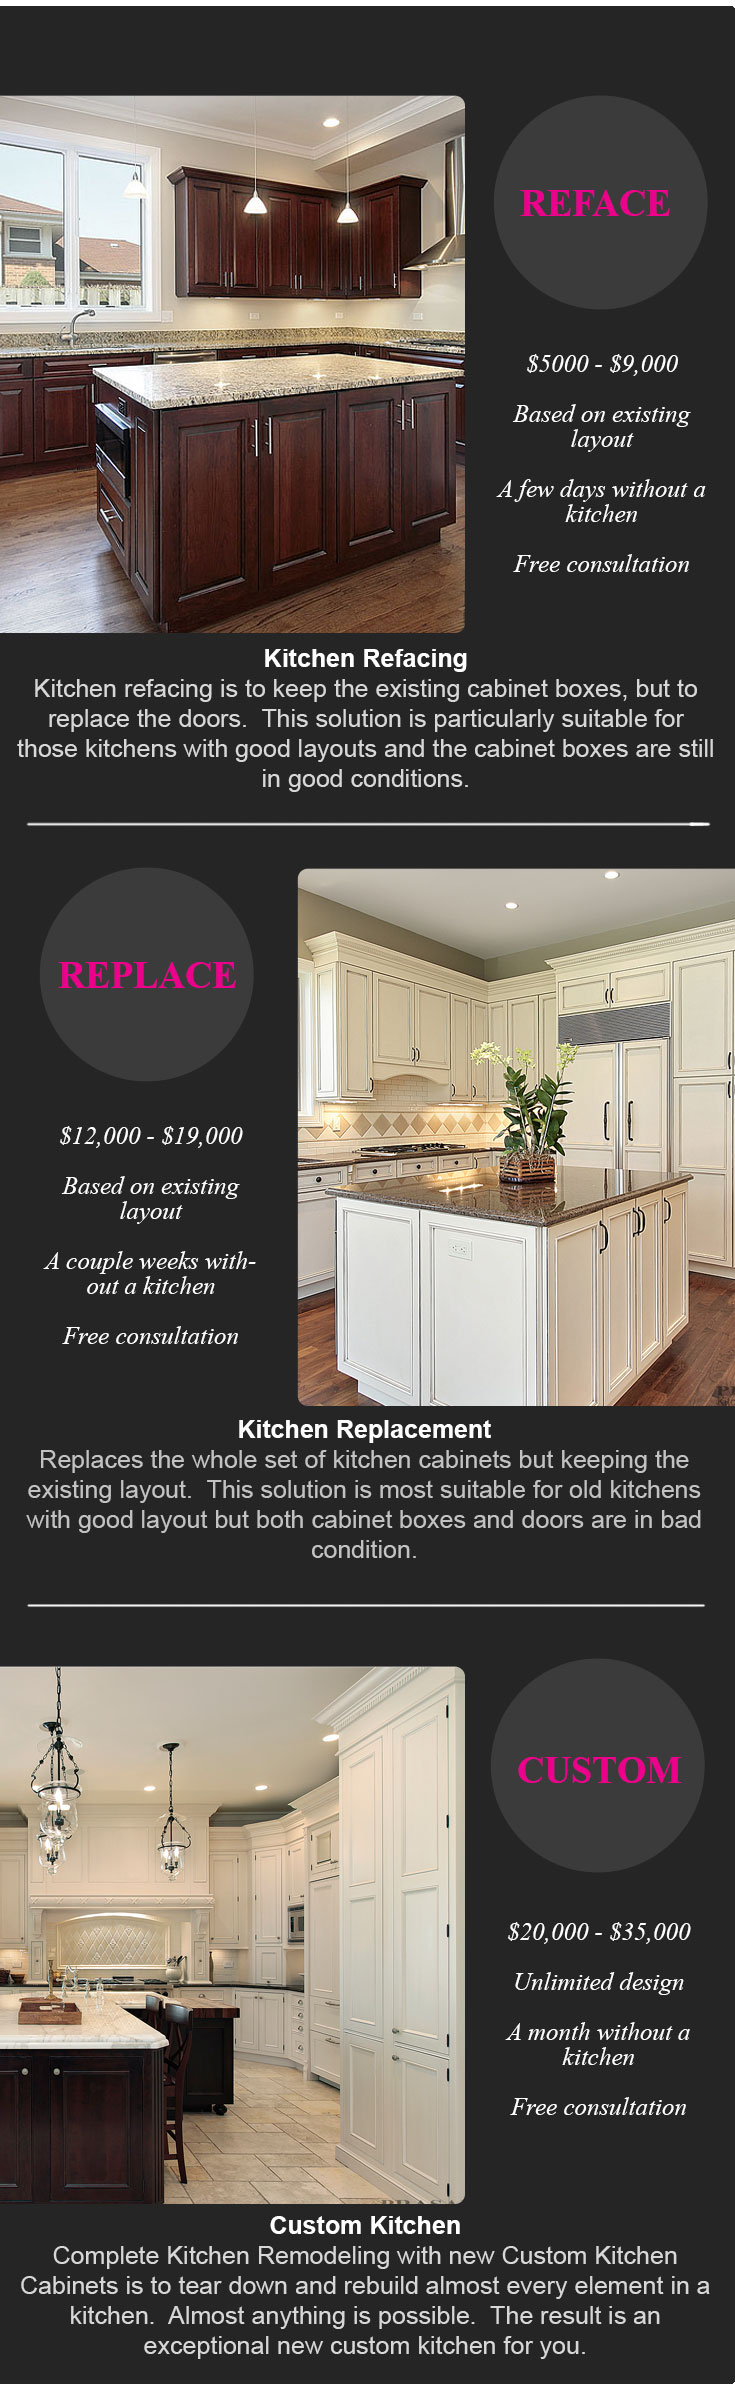 Uncategorized Kitchen Cabinets Mississauga kitchen refacing mississauga prasada kitchens and fine cabinetry mississauga